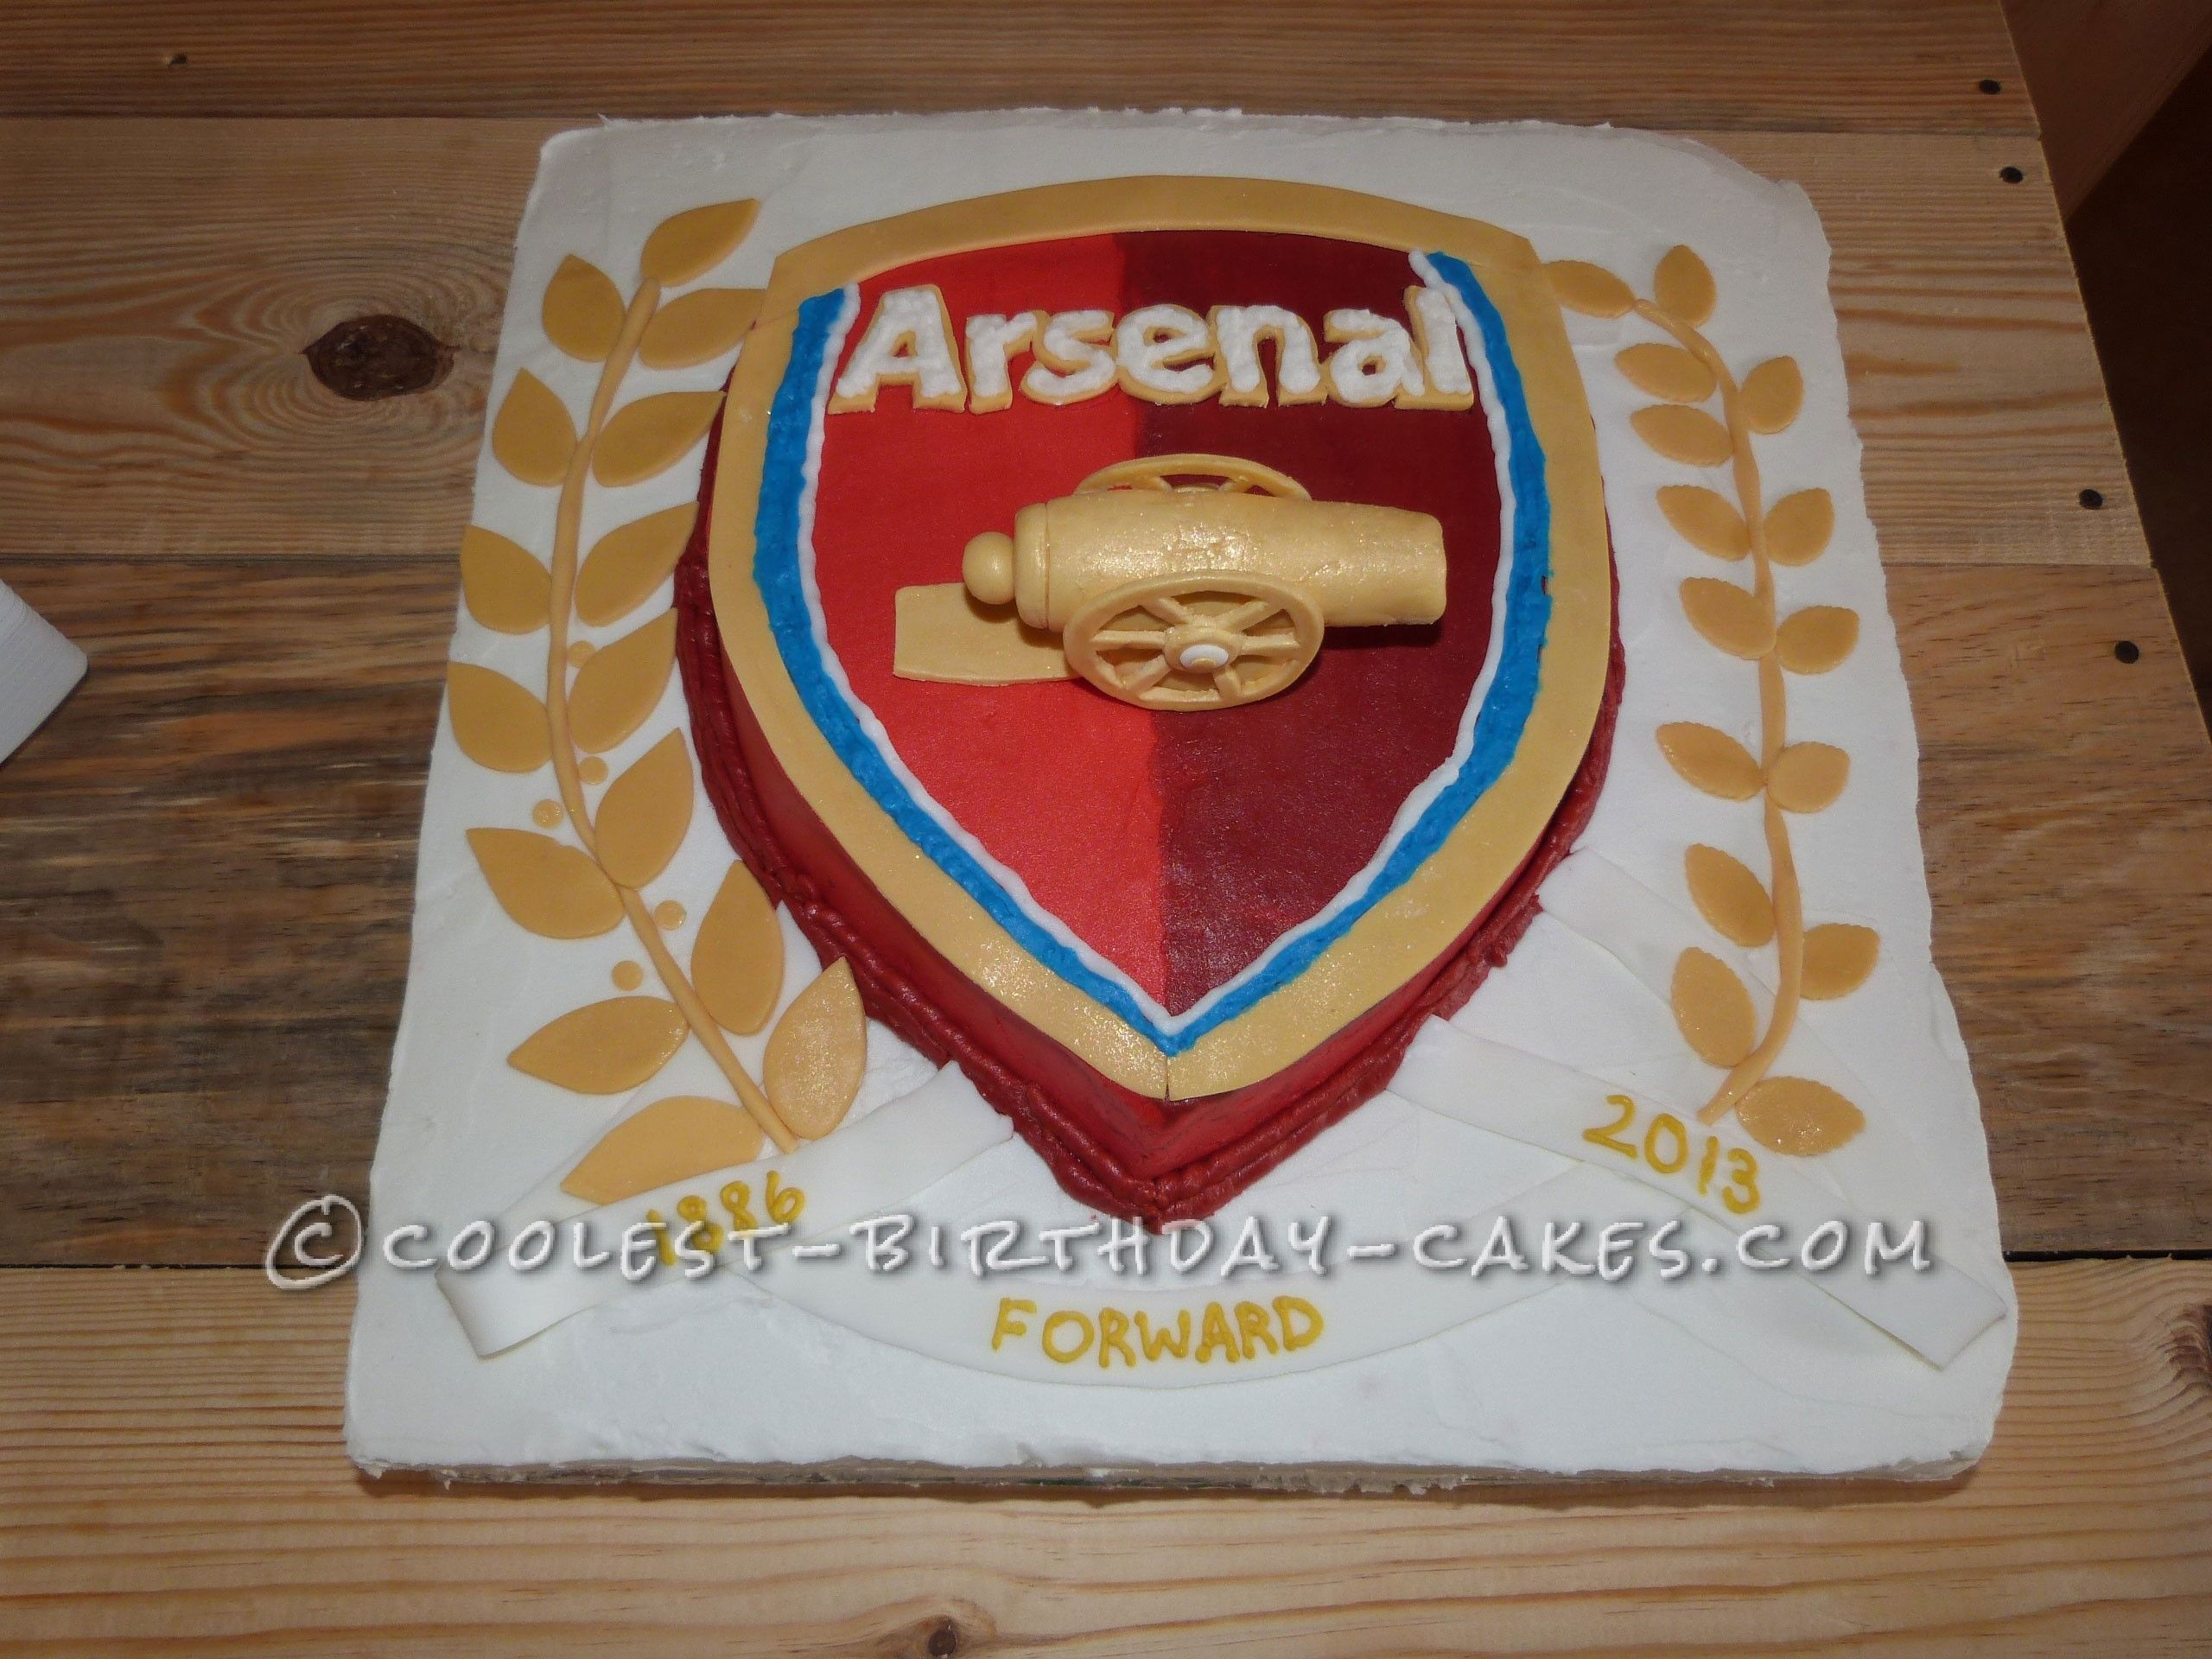 Awesome Arsenal Football Club Cake For A Soccer Fanatic Arsenal